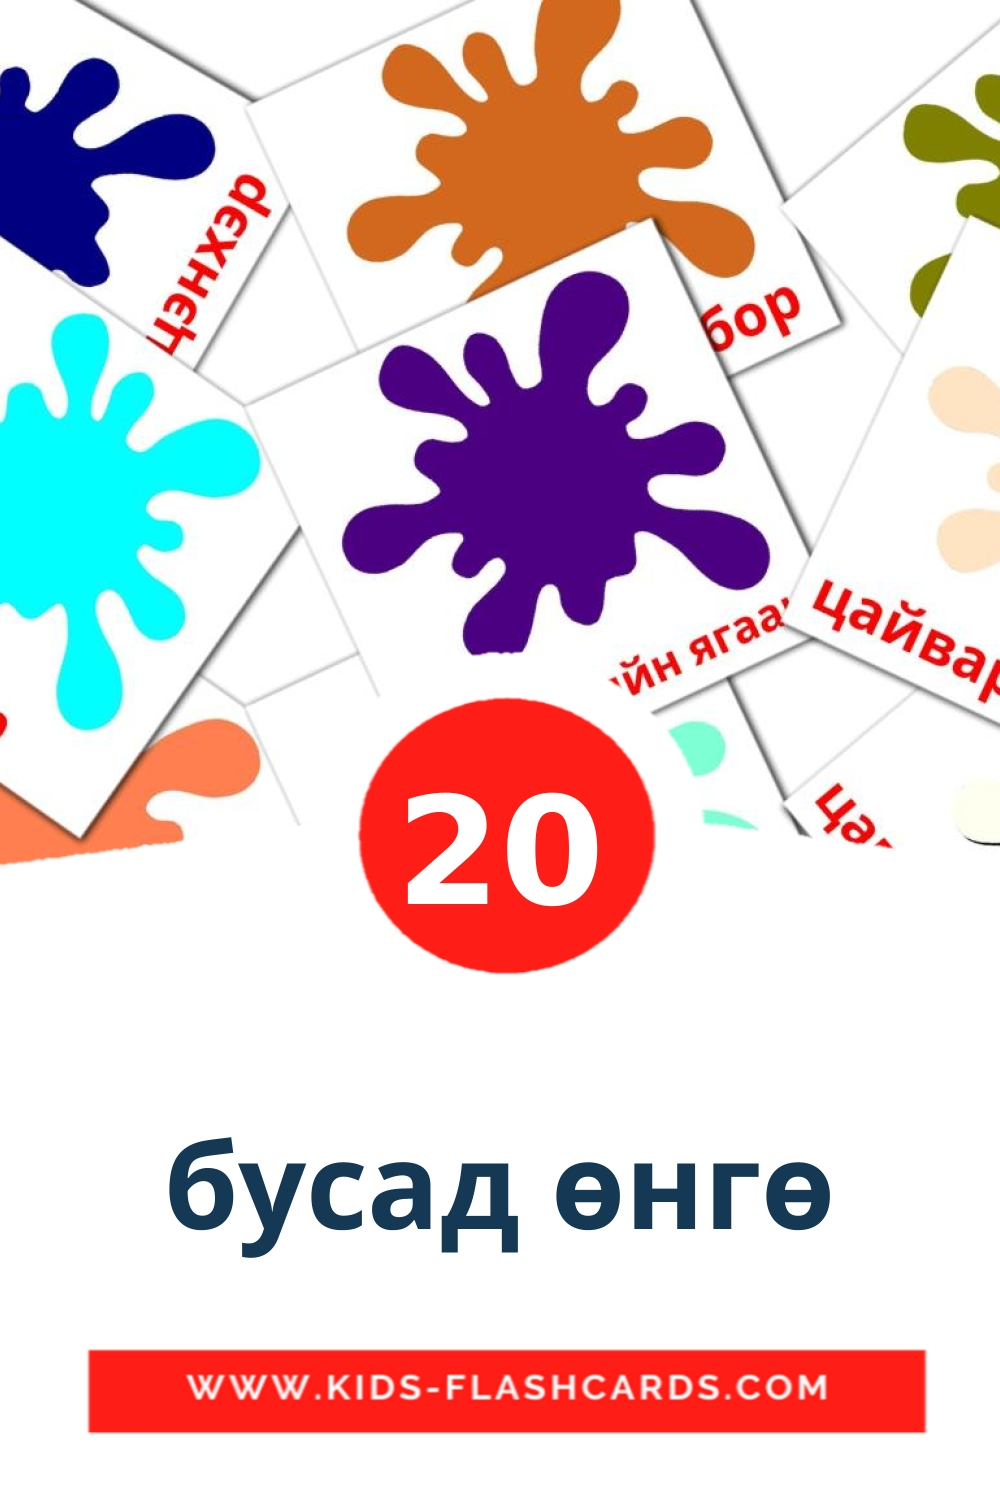 20 бусад өнгө Picture Cards for Kindergarden in mongolian